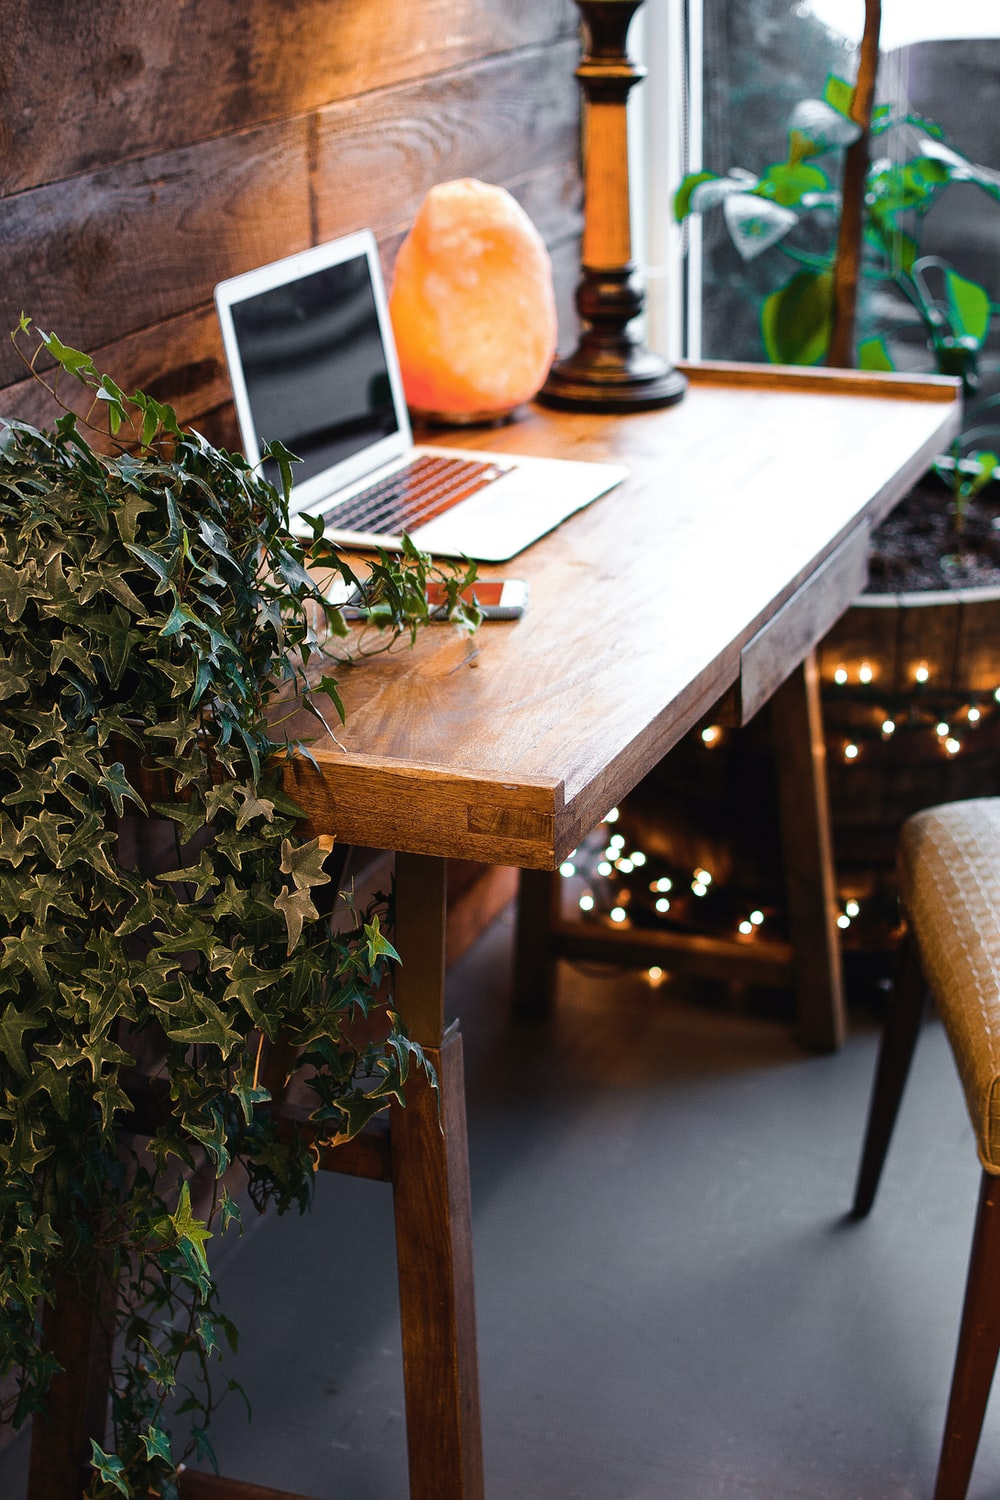 silver macbook air on brown wooden table